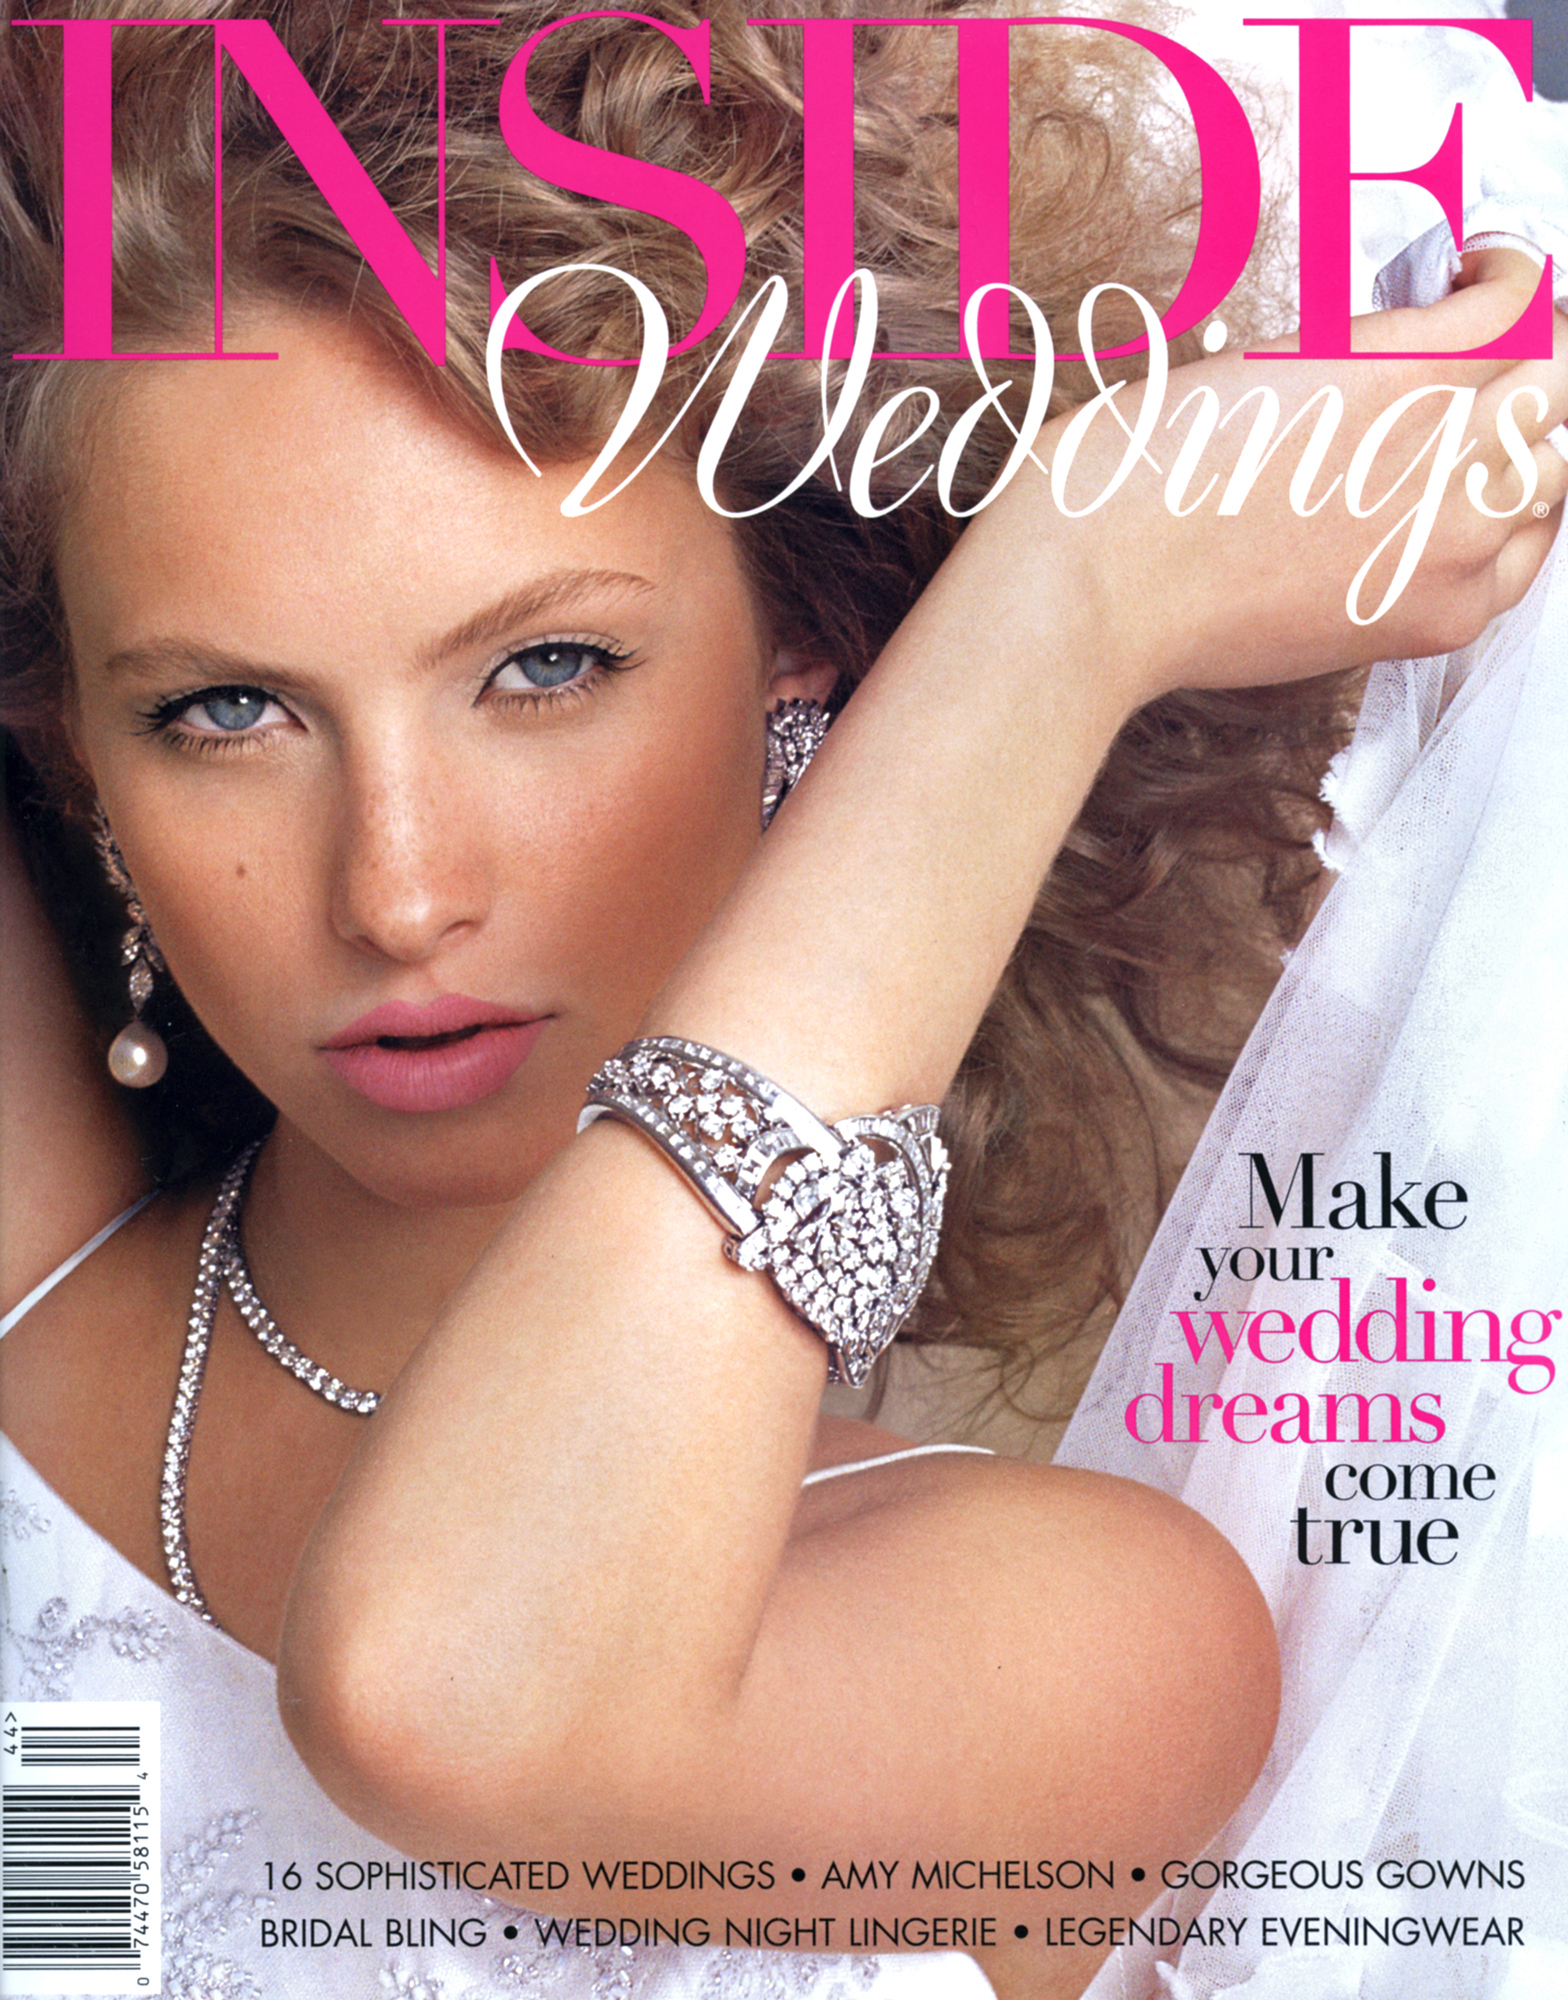 WEDDINGS,MagazineCover,retouching,Brides,Models,celebrations.jpg